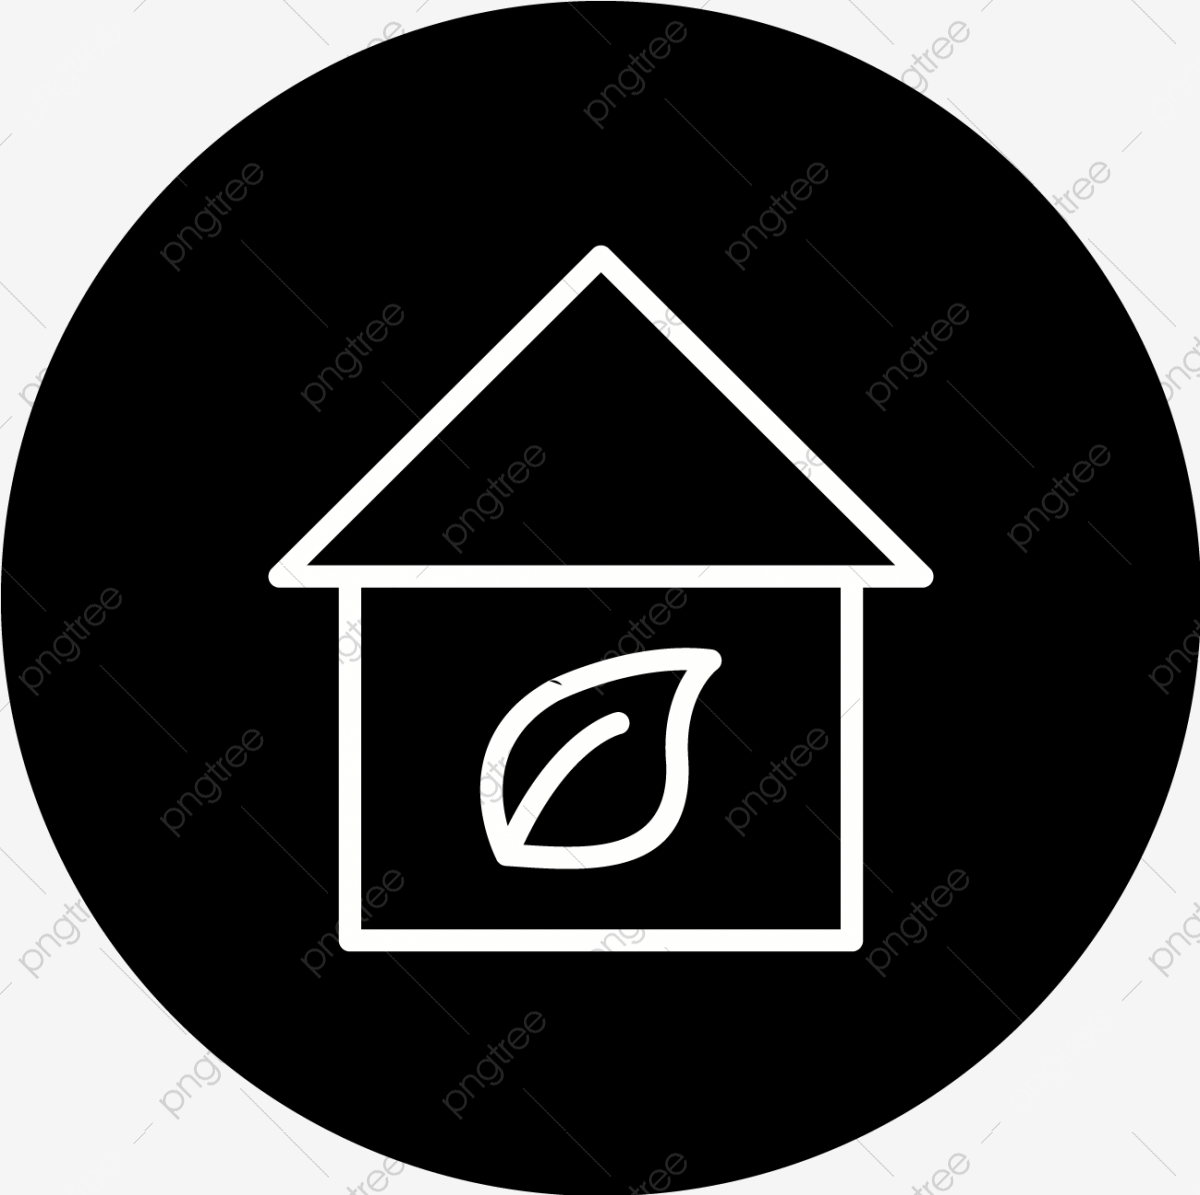 eco home png vector psd and clipart with transparent background for free download pngtree https pngtree com freepng vector eco home icon 4140735 html